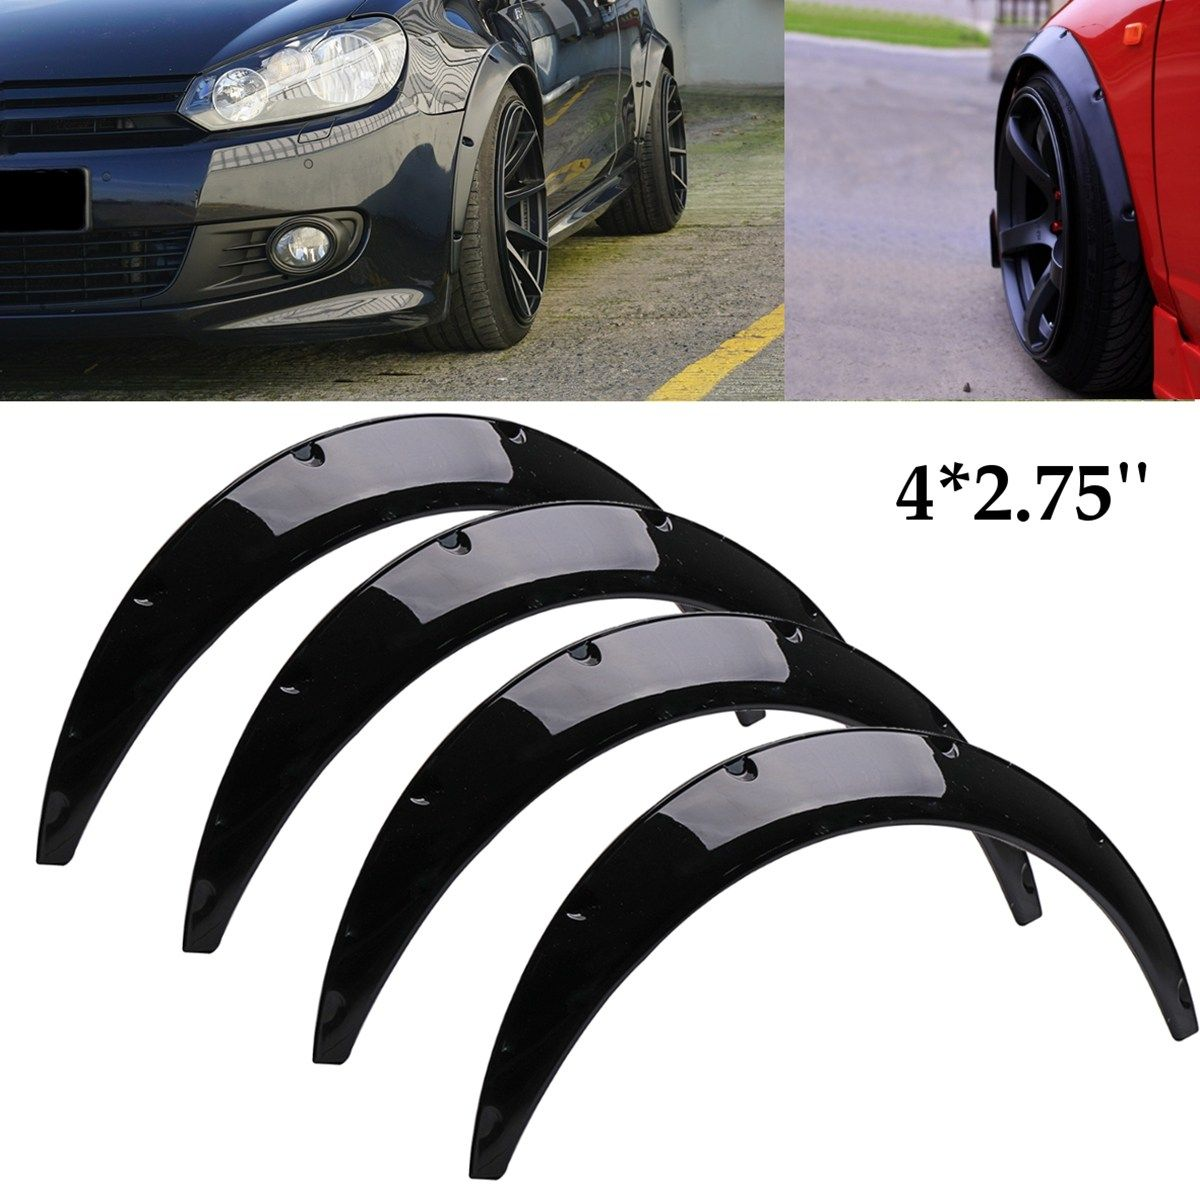 4Pcs 2.75 inch Universal Gloss Black Flexible Car Body For Fender Flares Extension Wide Wheel Arches